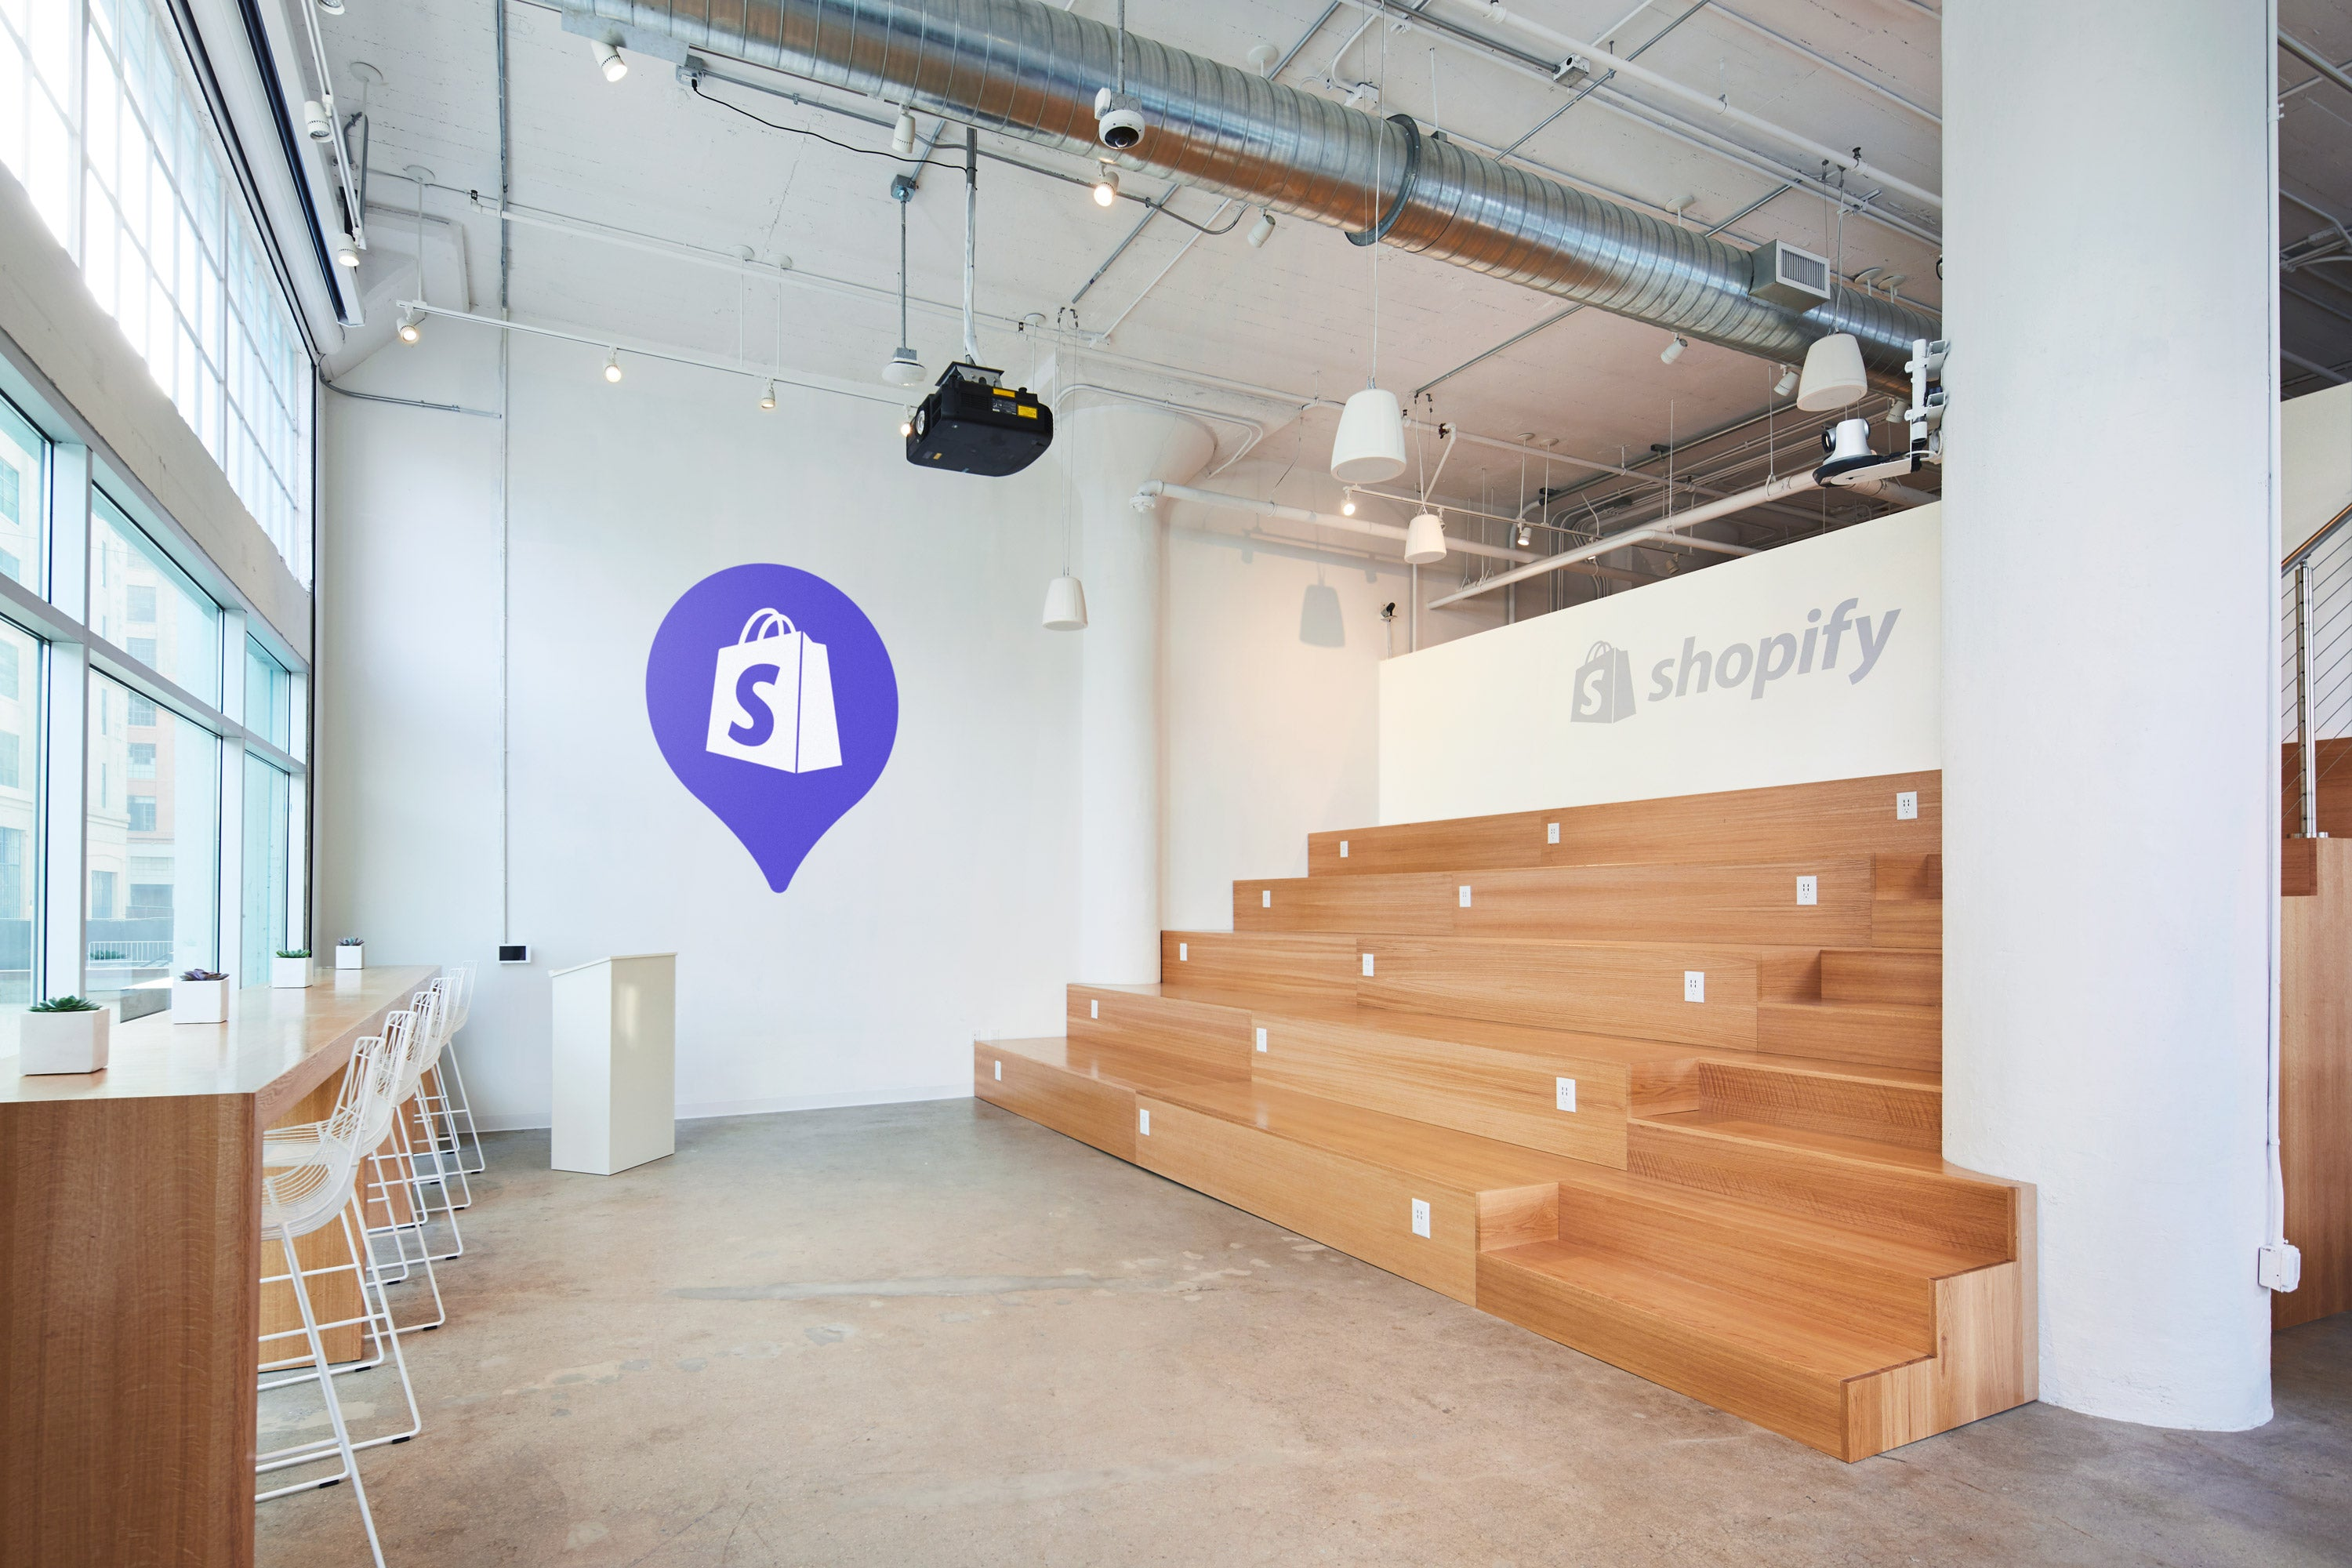 Shopify in LA custom amphitheater